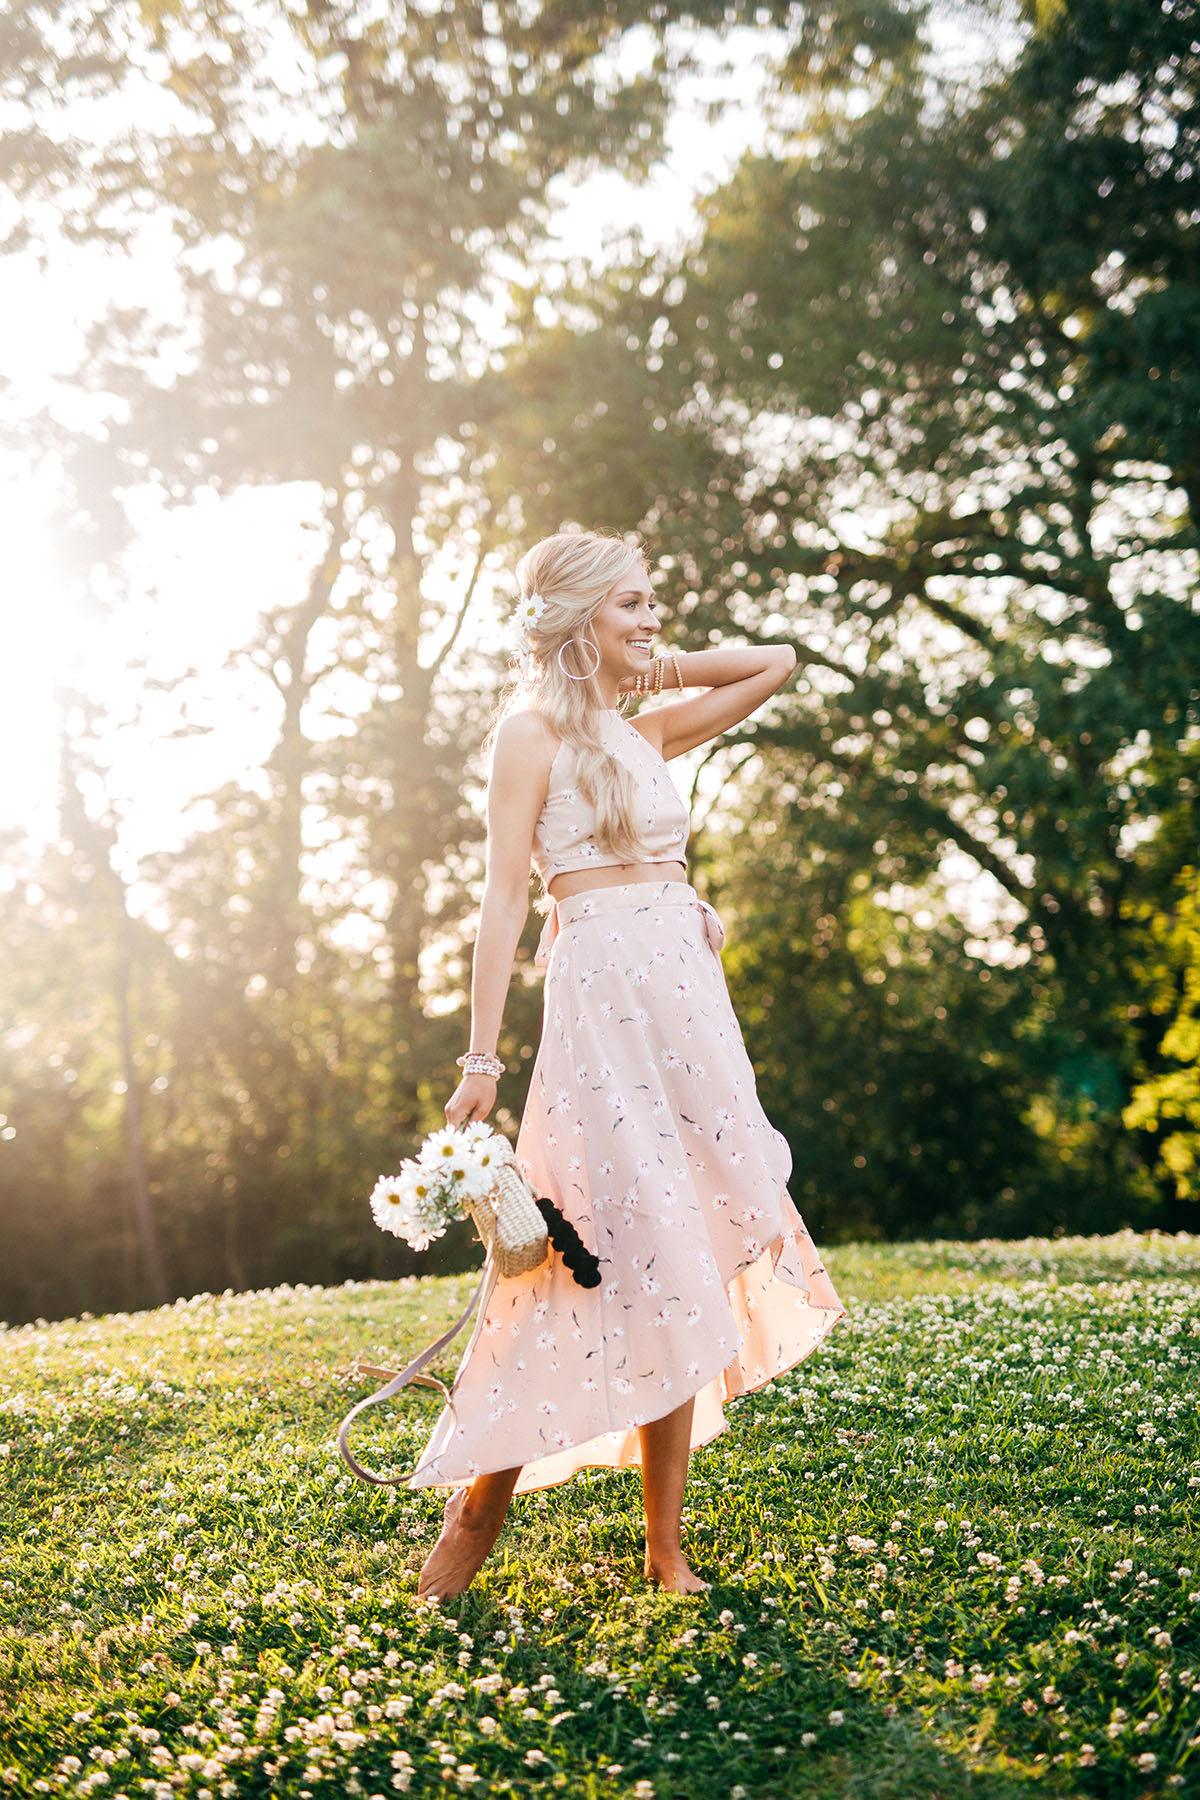 The Most Flattering Outfits for Festival Season | Bloomingdale's Festival Outfit Inspiration